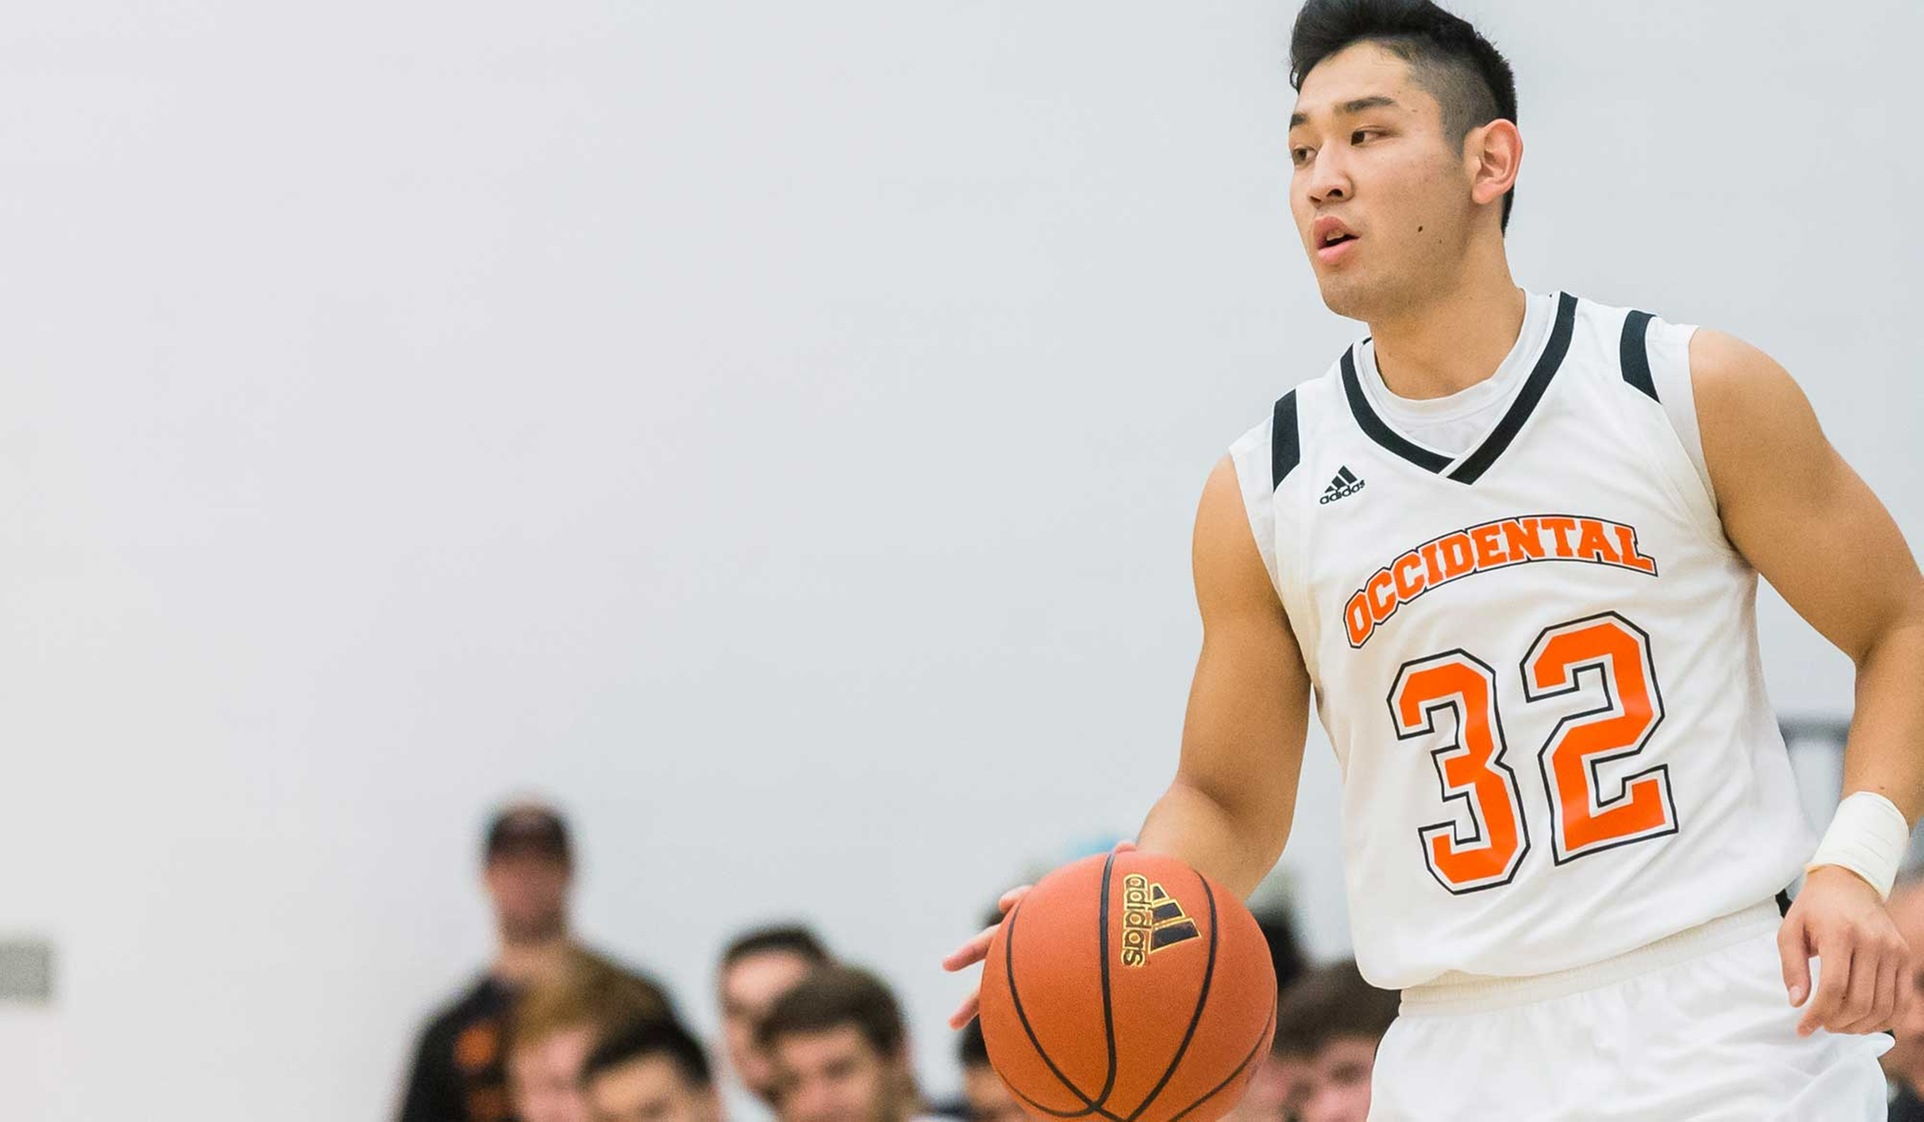 Kaneshiro, Oxy Extend Win Streak to 13